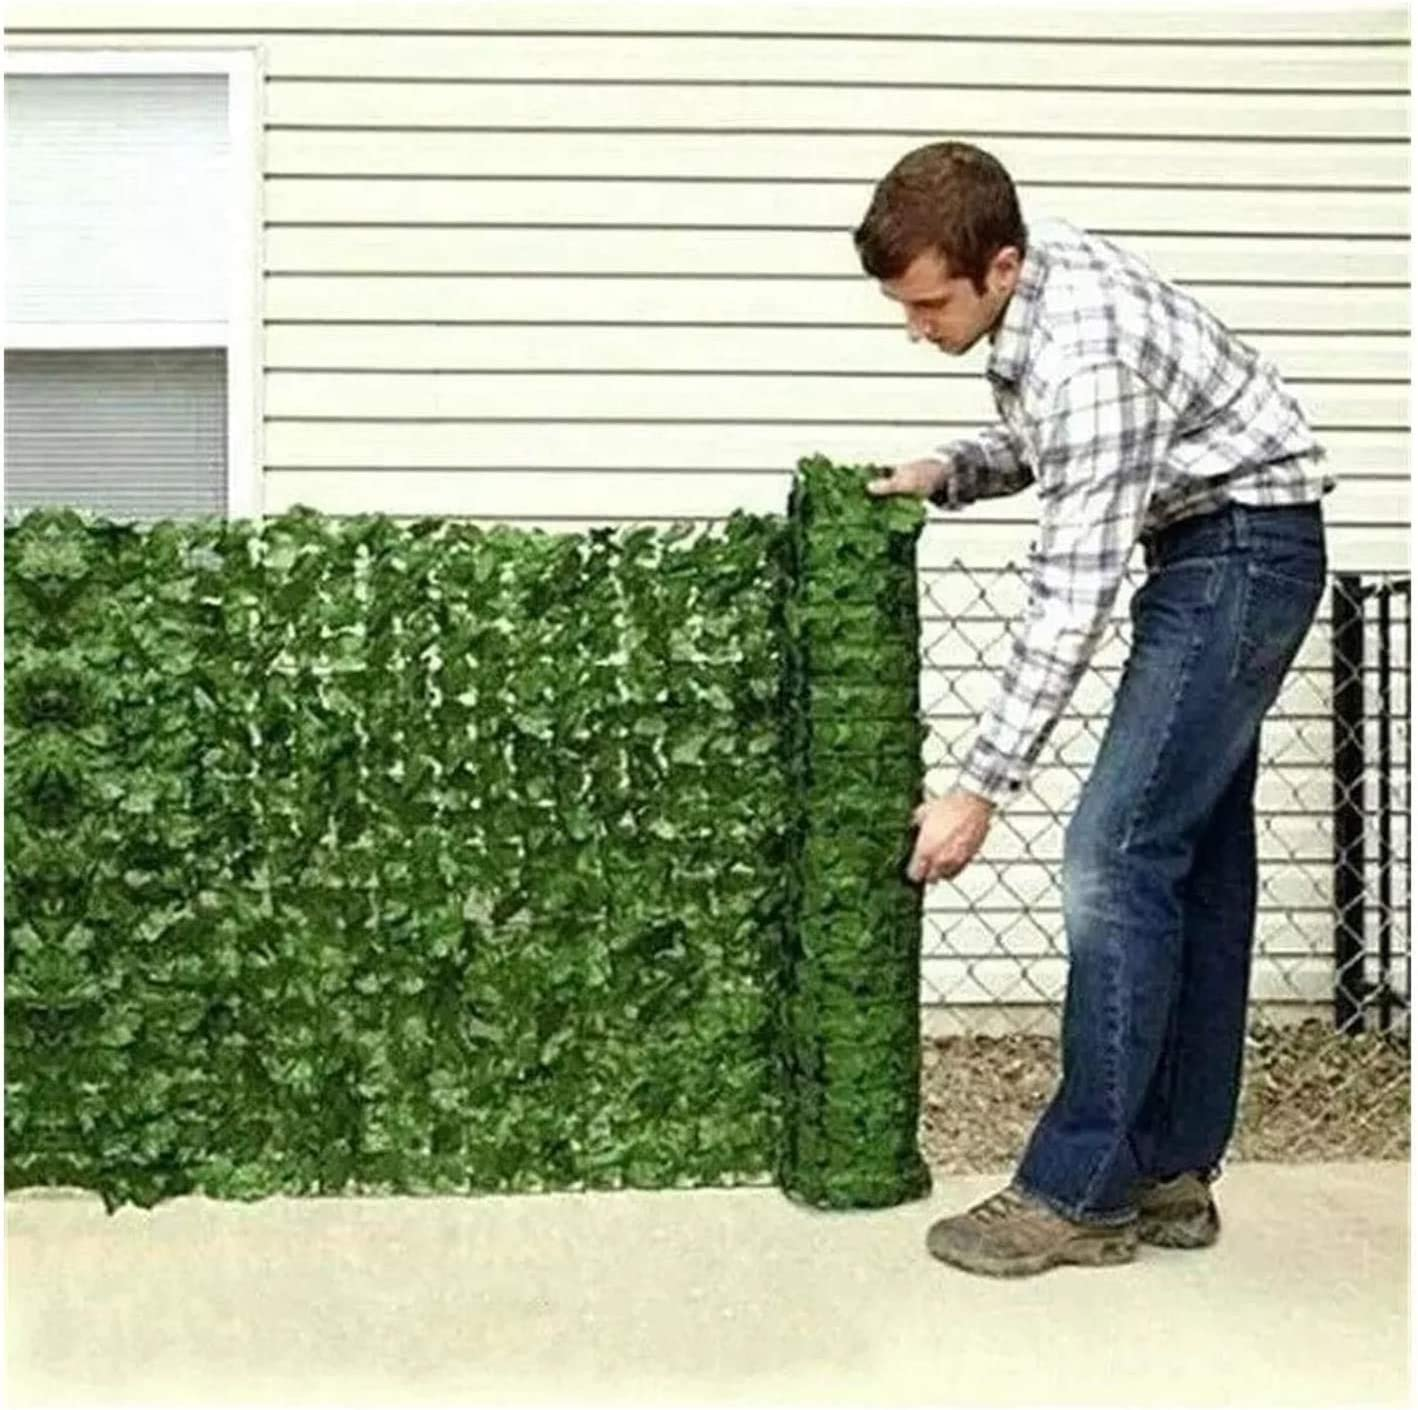 Privacy Fence Screen gift Ivy Limited time sale Balcony Wea Fences Leaf Polyester Decor